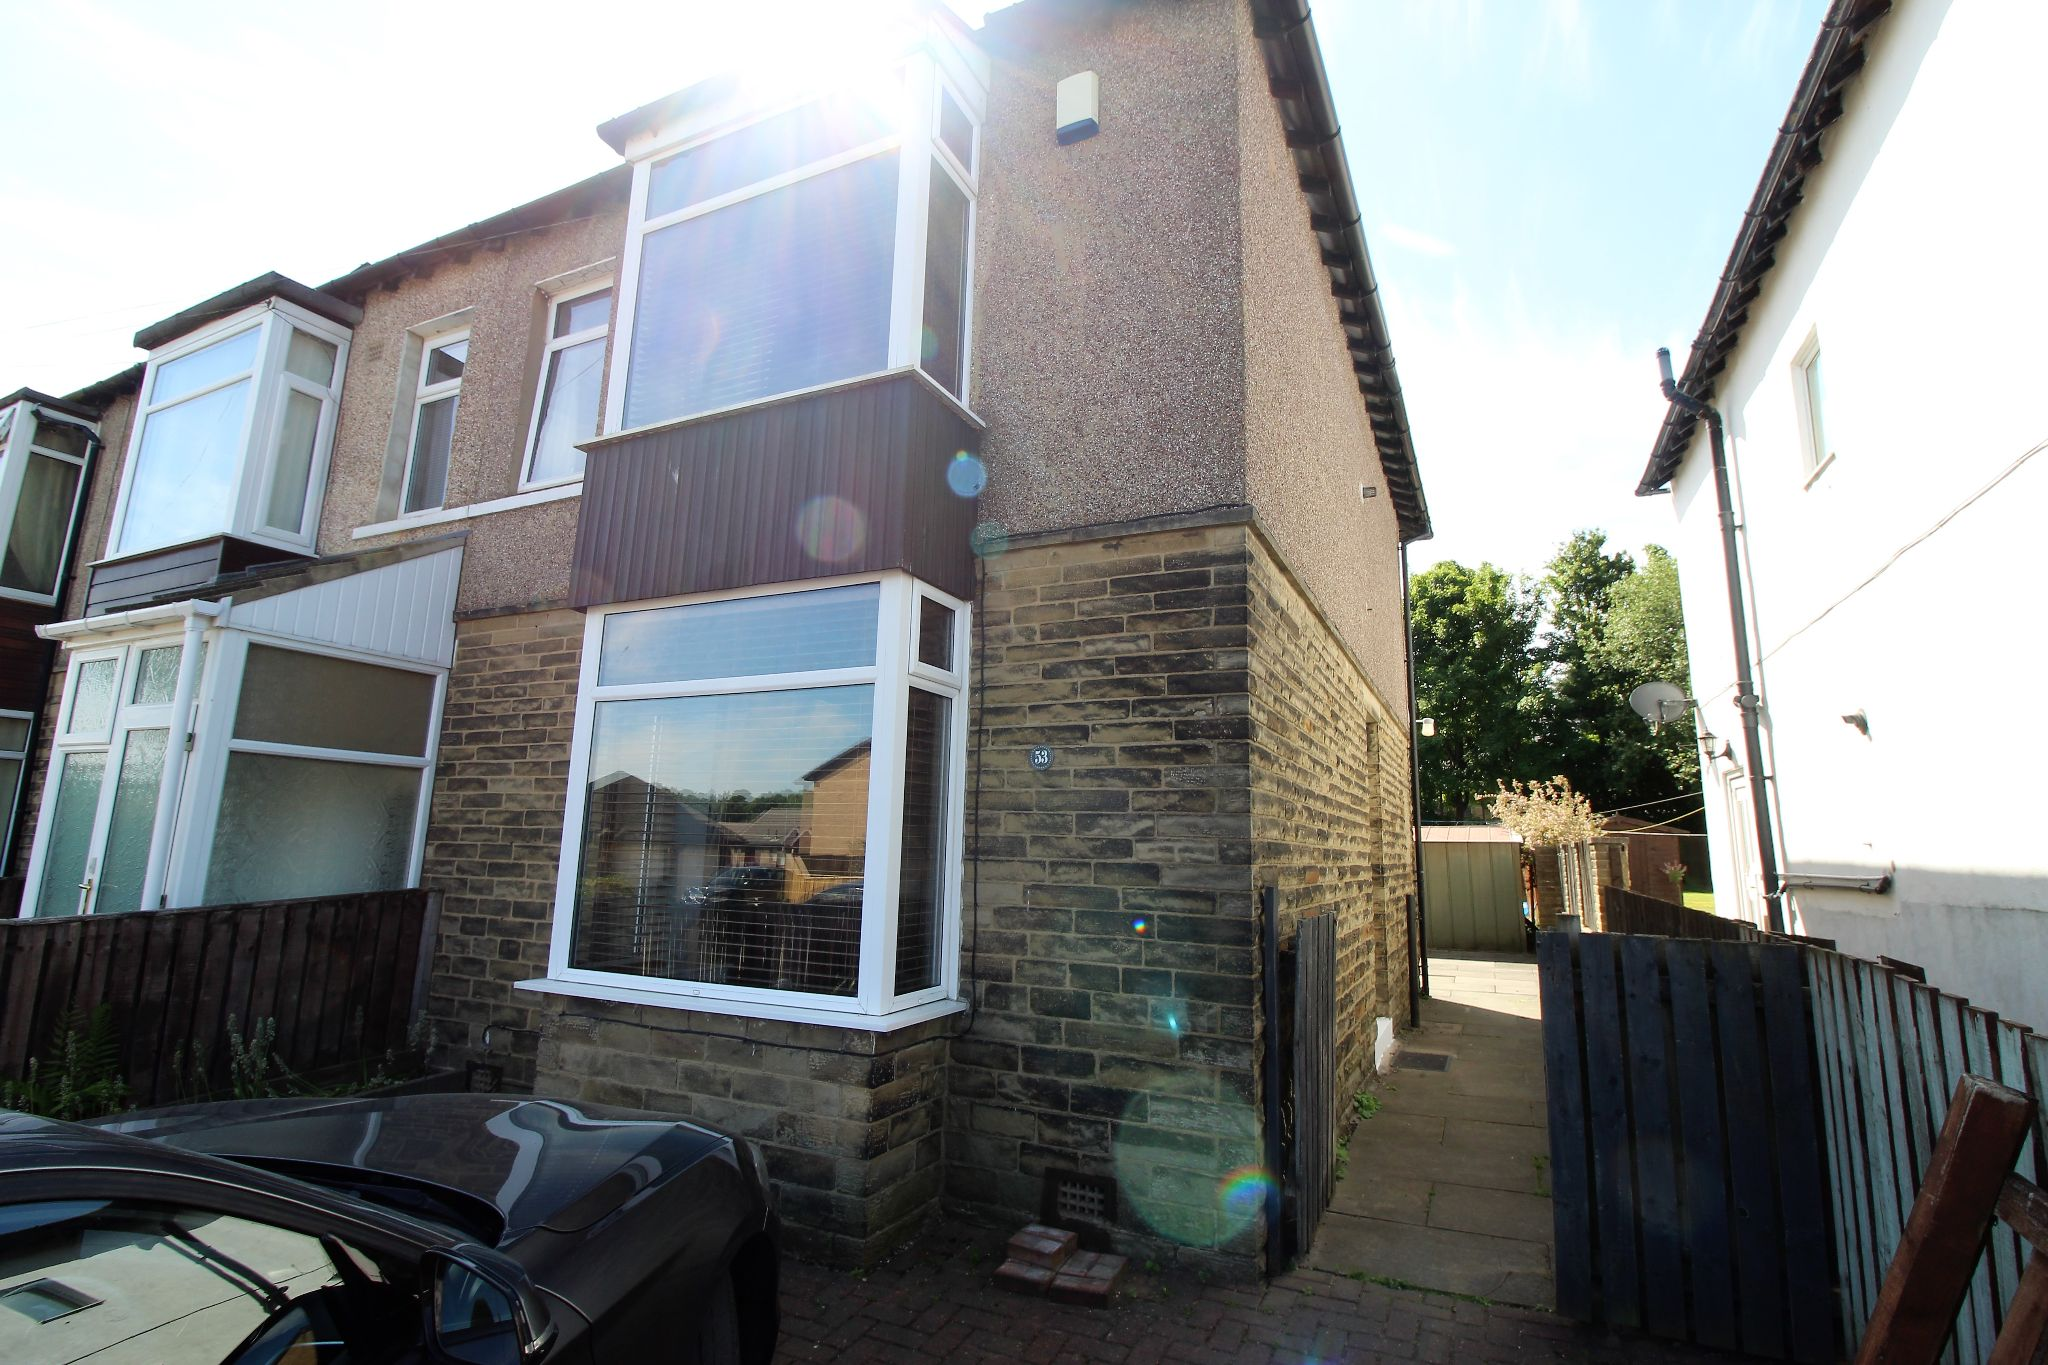 3 bedroom end terraced house Let in Brighouse - Front elevation